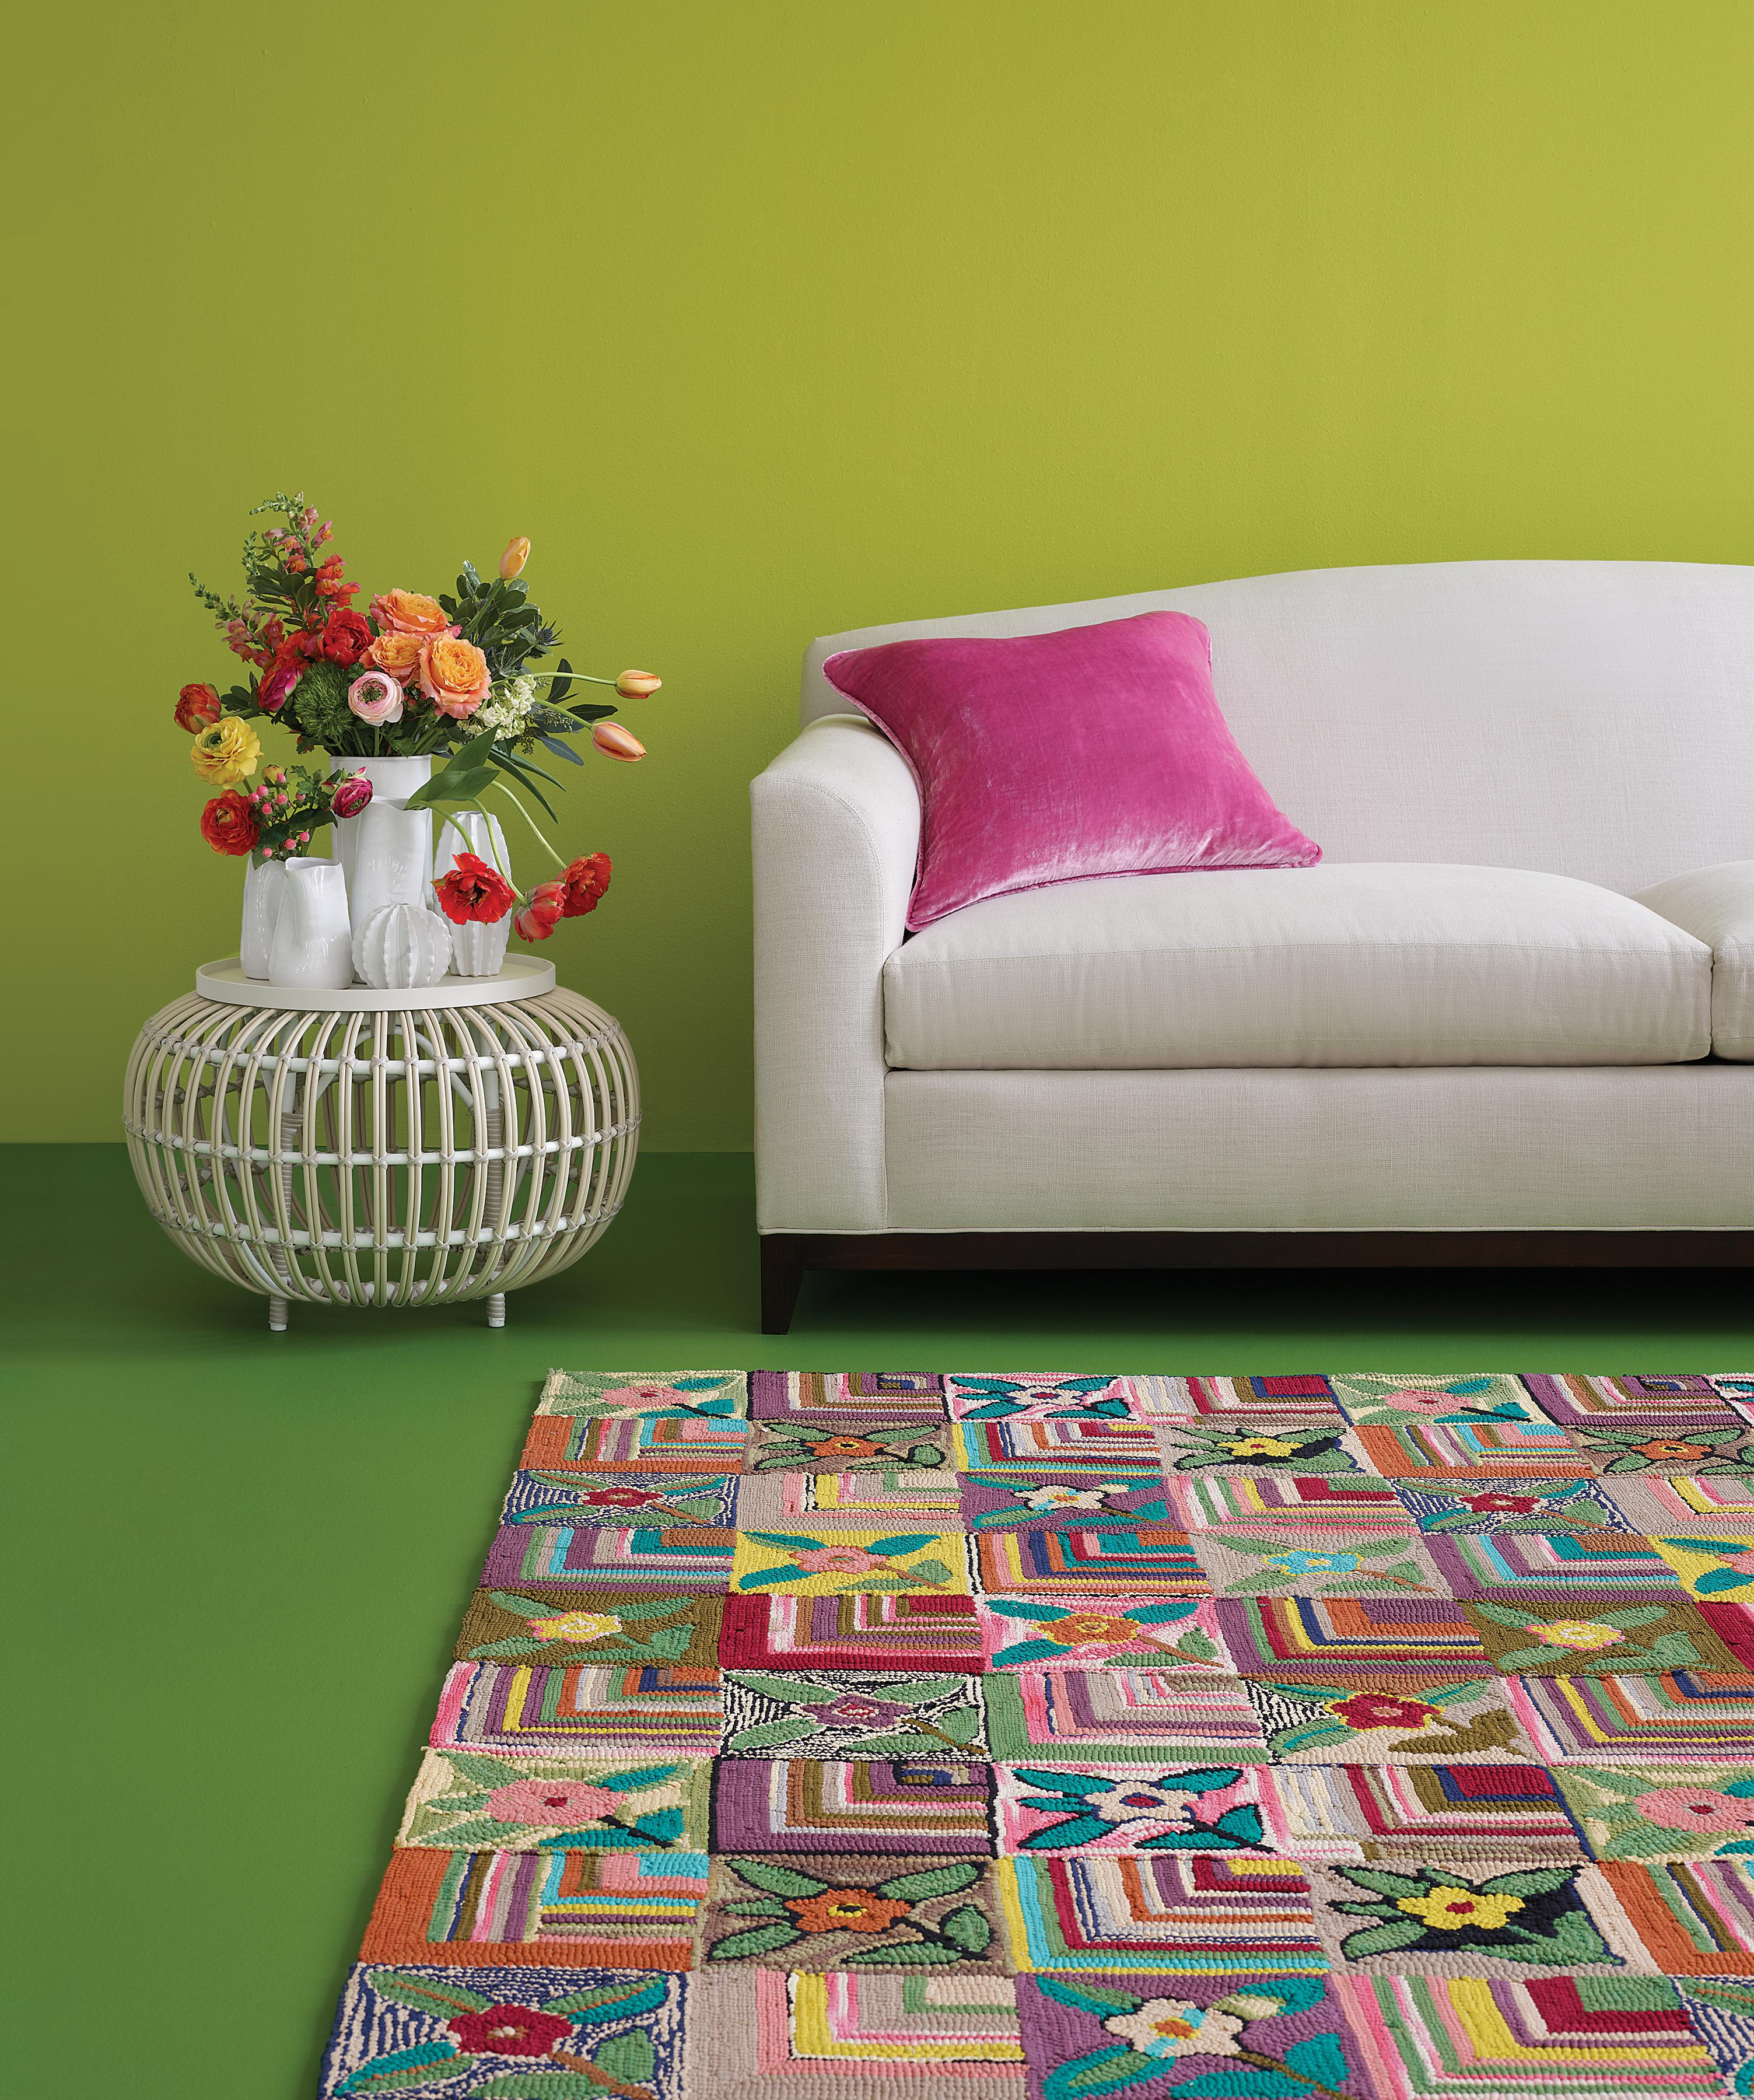 Make the rug a room's focal point by choosing a piece with a bright, intricate